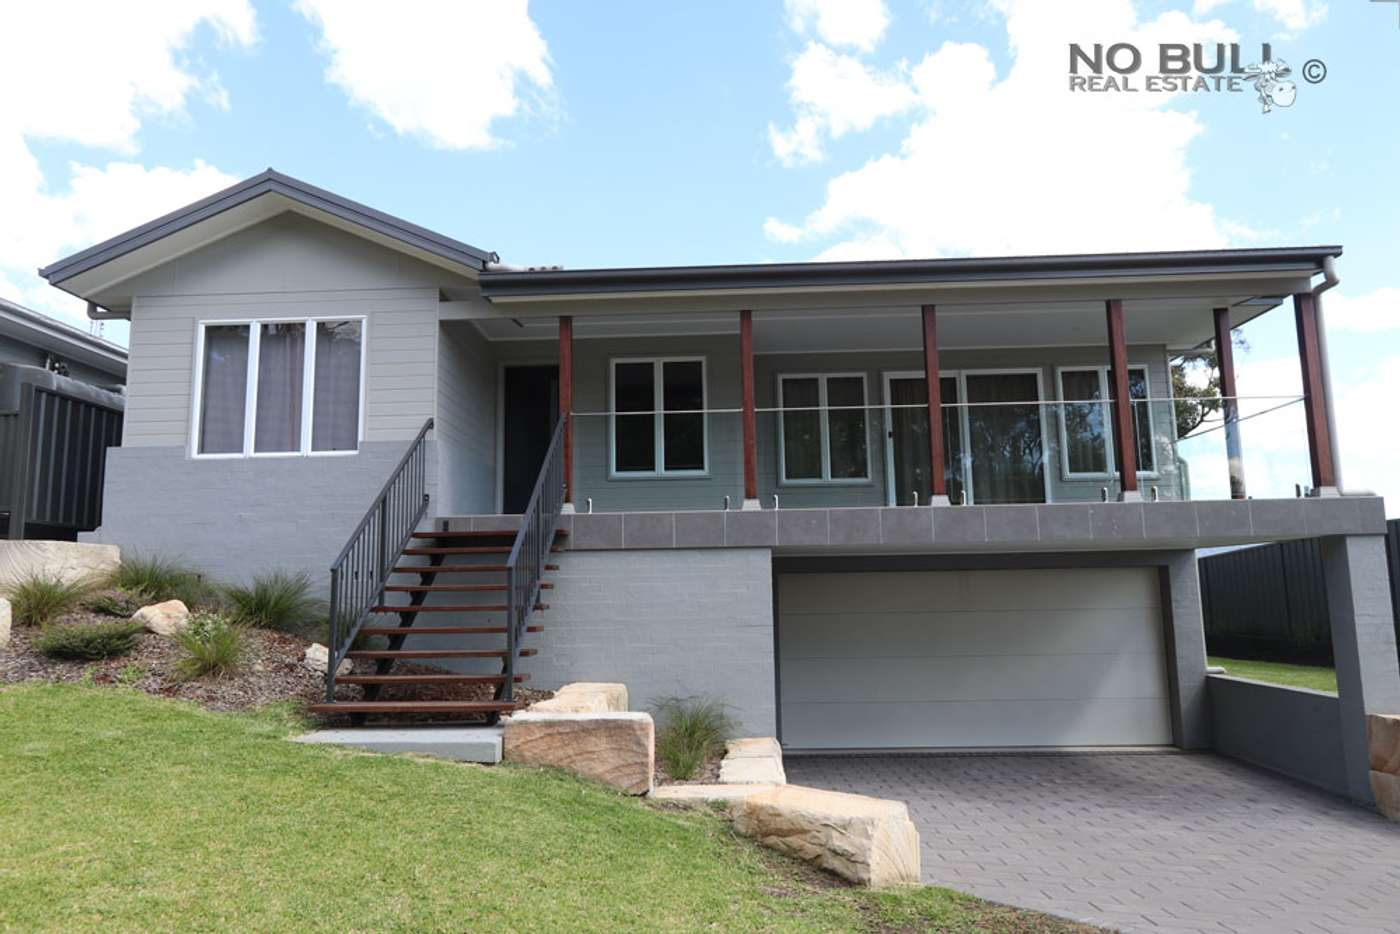 Main view of Homely house listing, 37 Conveyor Street, West Wallsend NSW 2286